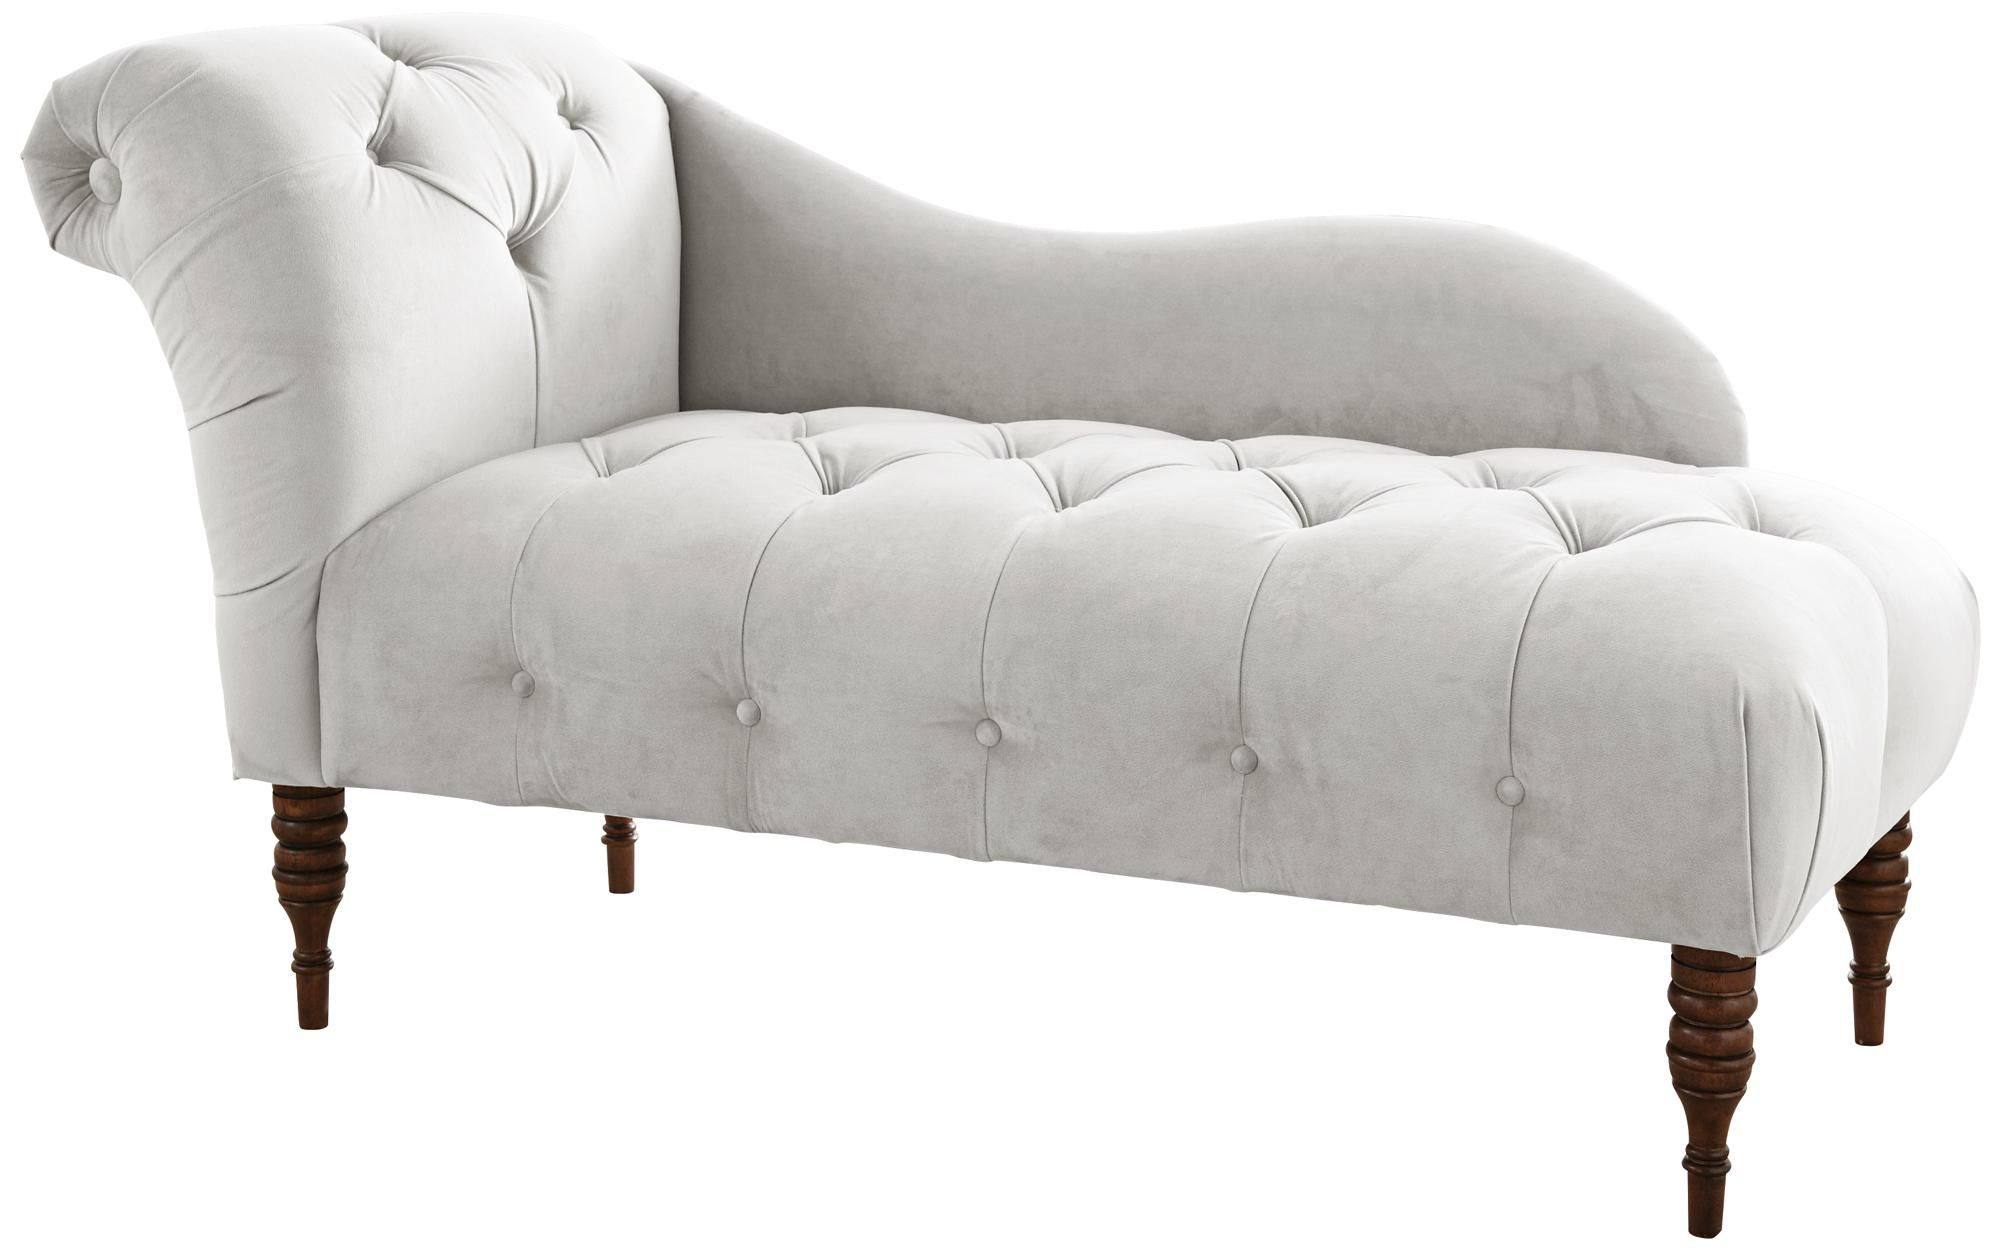 White Velvet Upholstered Chaise Lounge Chair -  sc 1 st  Pinterest : tufted chaise lounge chair - lorbestier.org